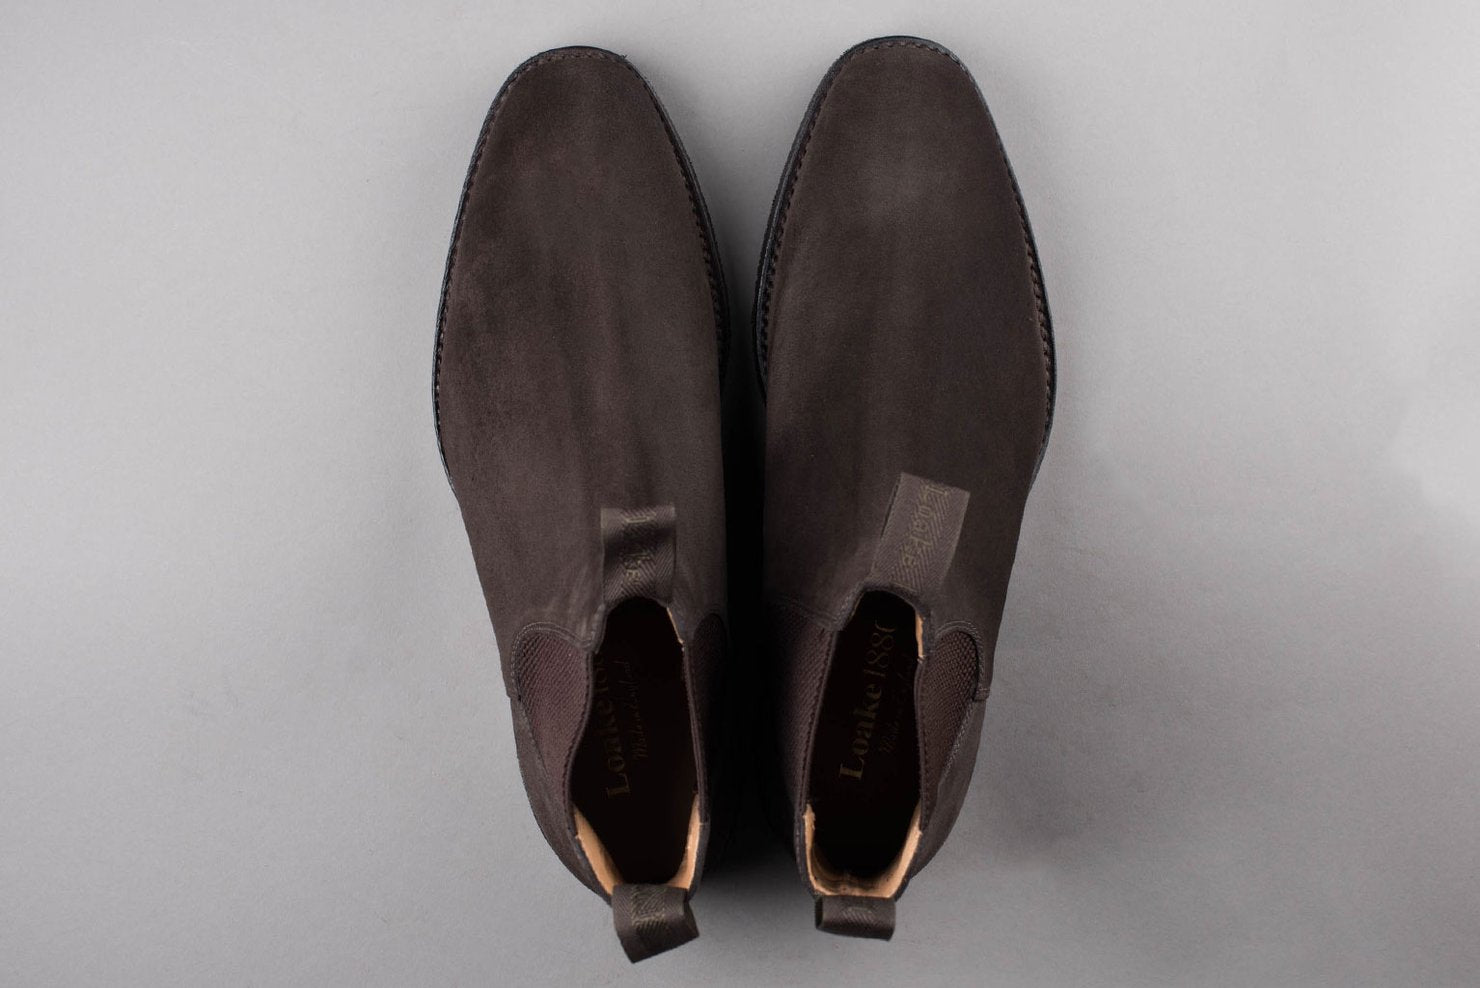 Loake - Chatsworth (Dark Brown waxed suede)